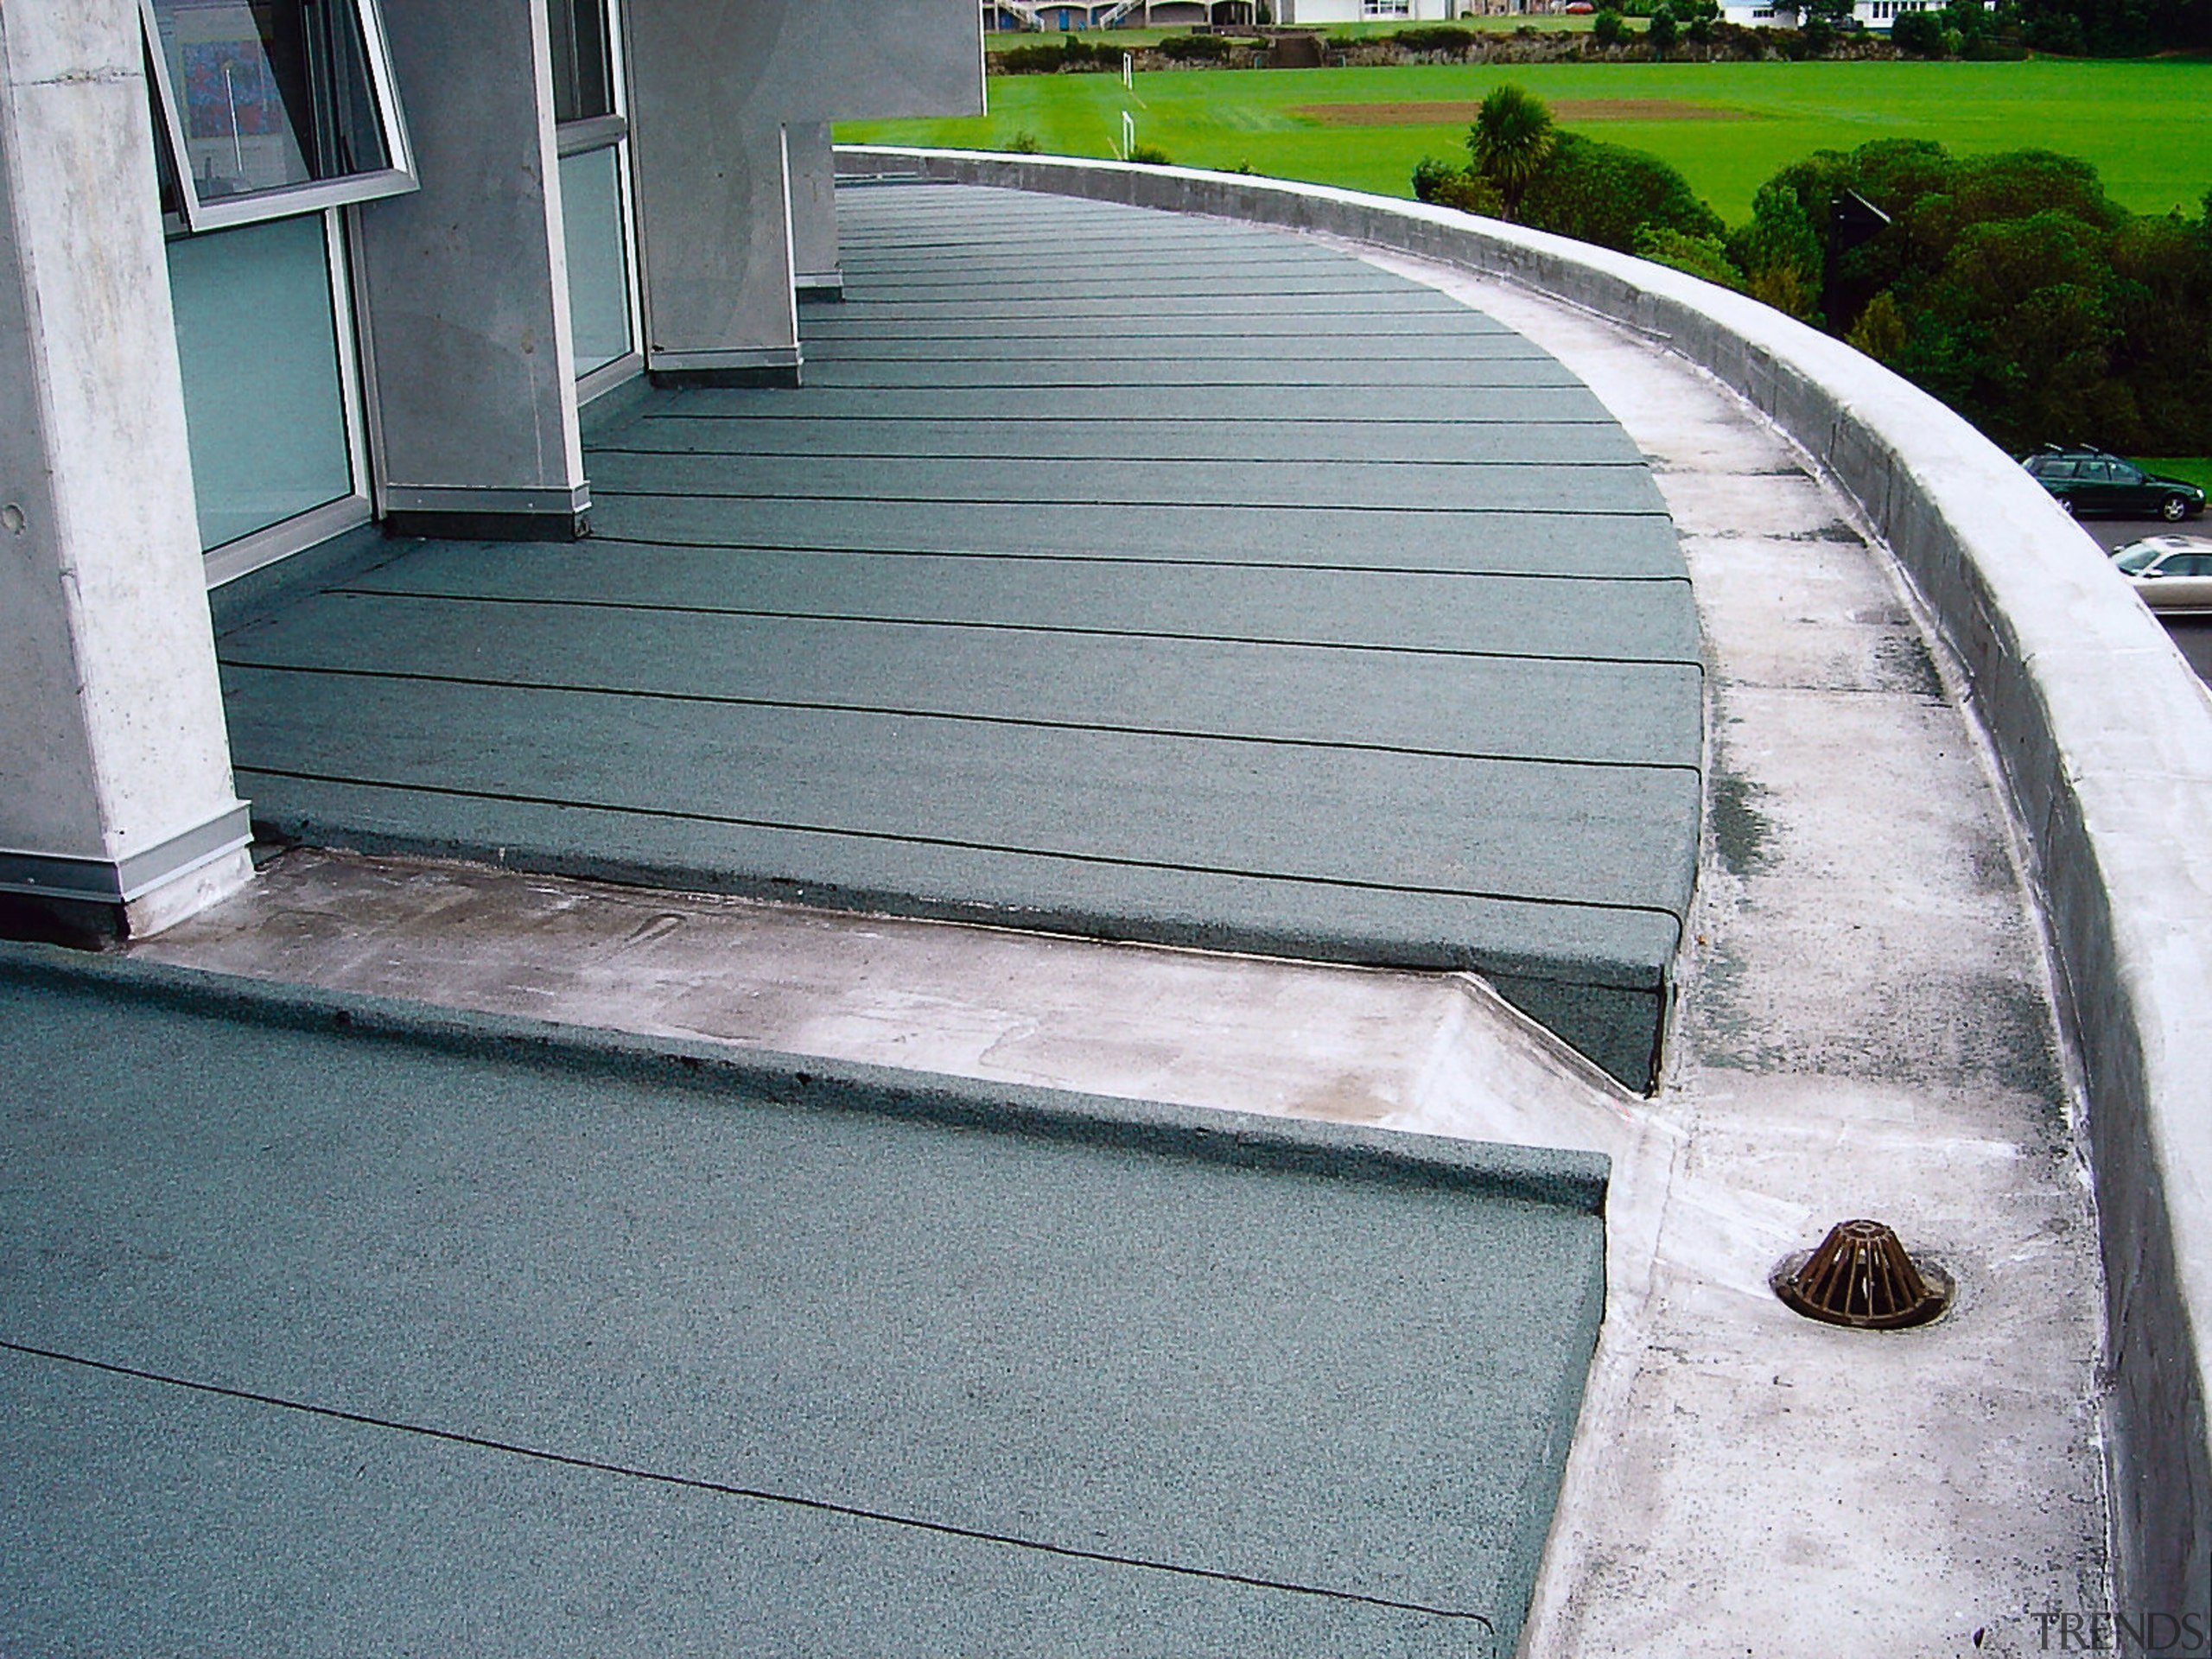 Waterproof roofing has been applied to these top architecture, asphalt, daylighting, floor, road surface, walkway, gray